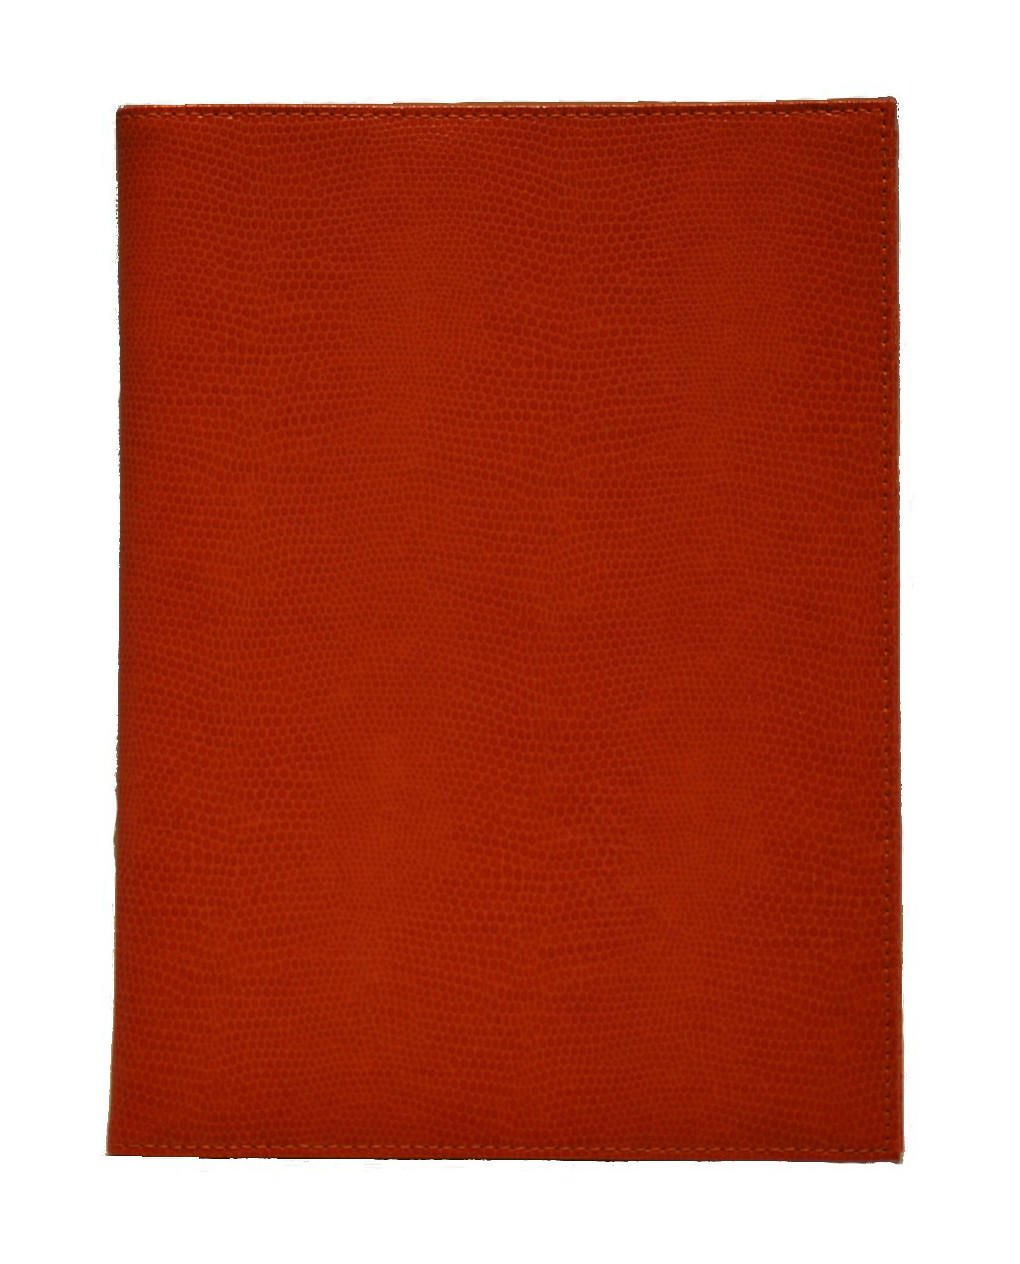 Lizard Petite Pad Cover Color: Tangerine